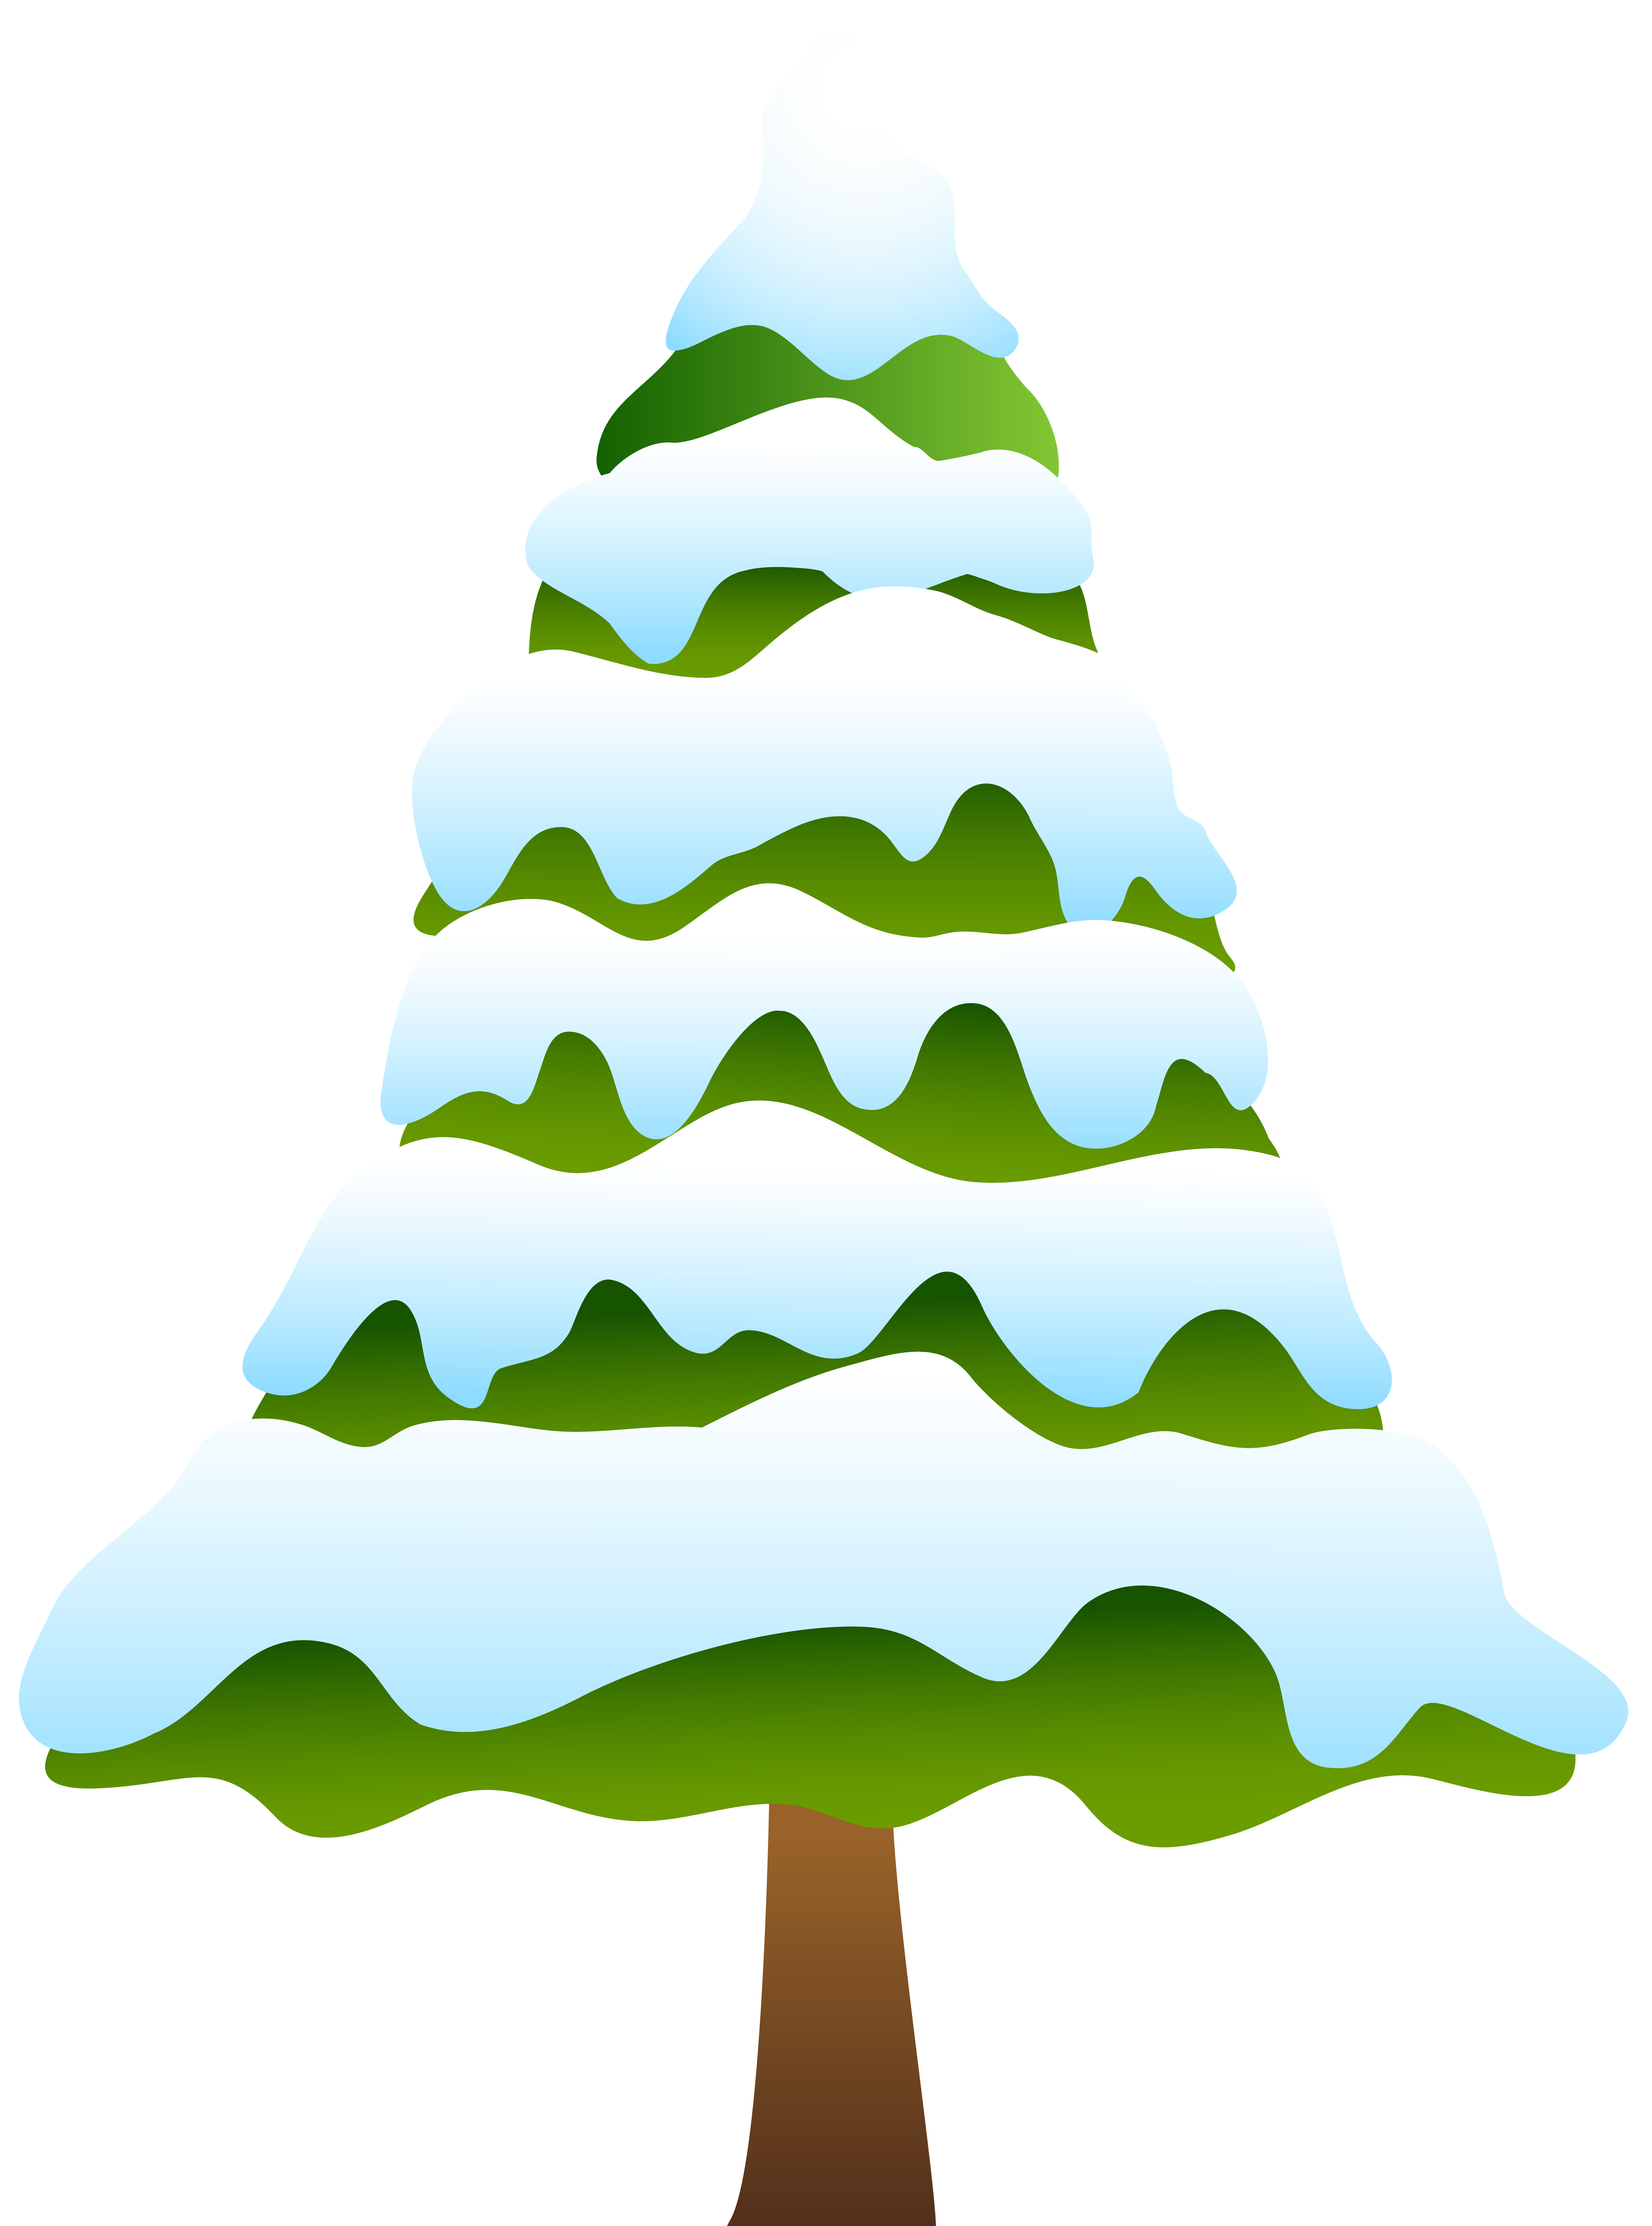 Snowy tree clipart clipart freeuse download Snowy Pine Tree Clip Art PNG Image | Gallery Yopriceville - High ... clipart freeuse download